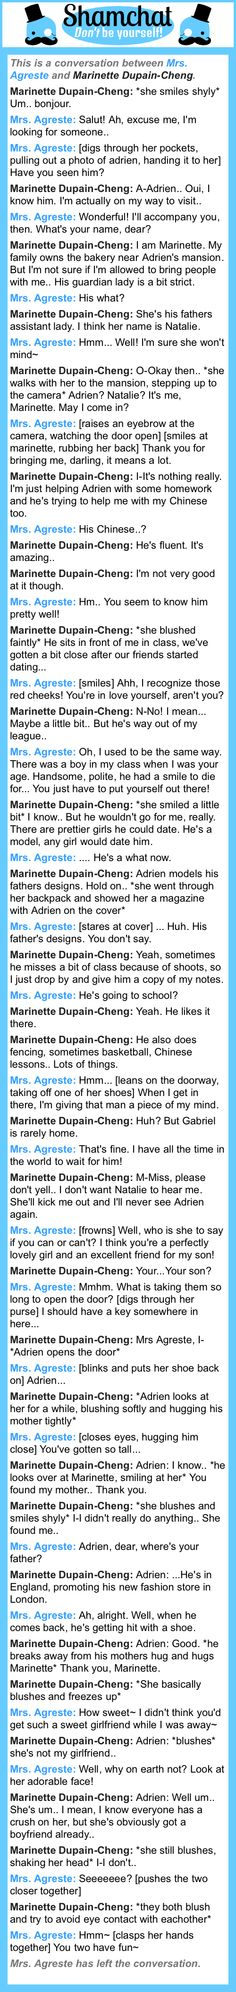 A conversation between Marinette Dupain-Cheng and Mrs. Agreste